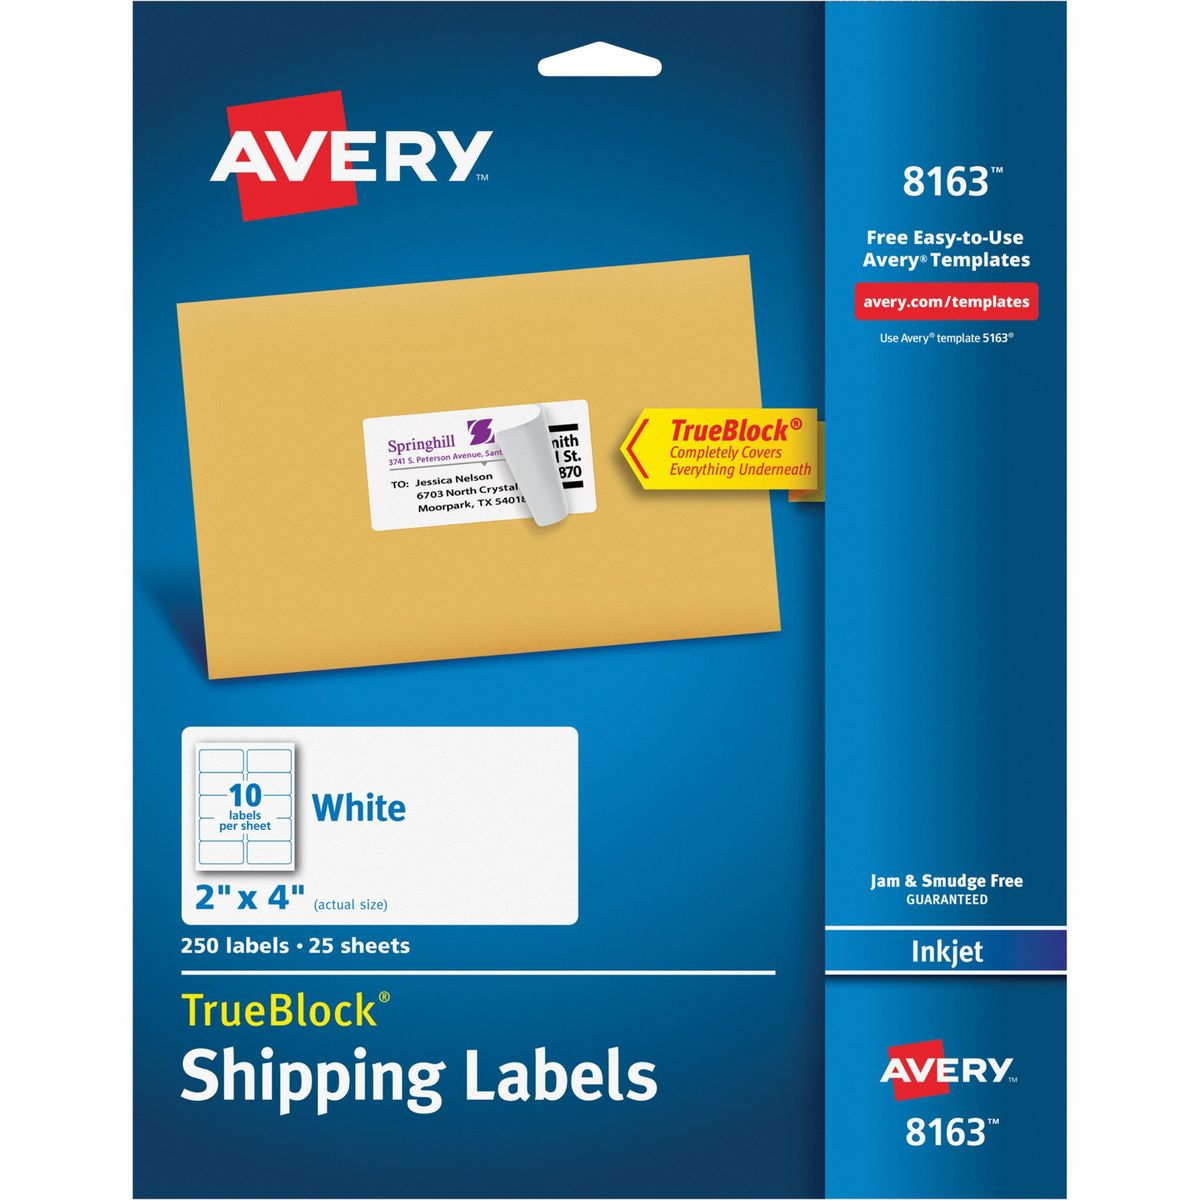 Shipping Labels with TrueBlock Technology - Walmart.com